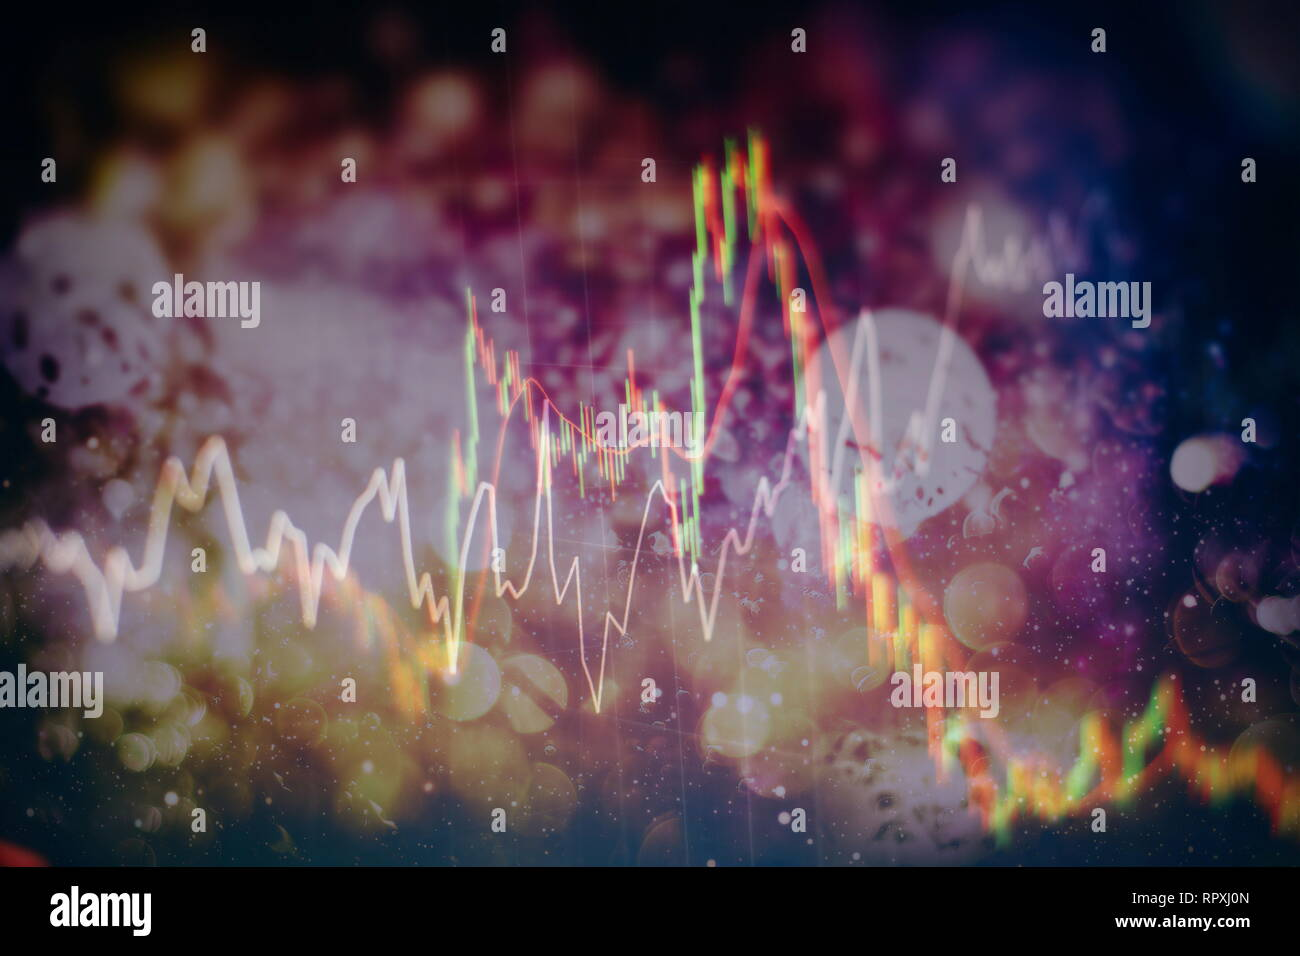 Forex glowing graphs of different colors showing financial market situation on abstract digital background. Stock Photo